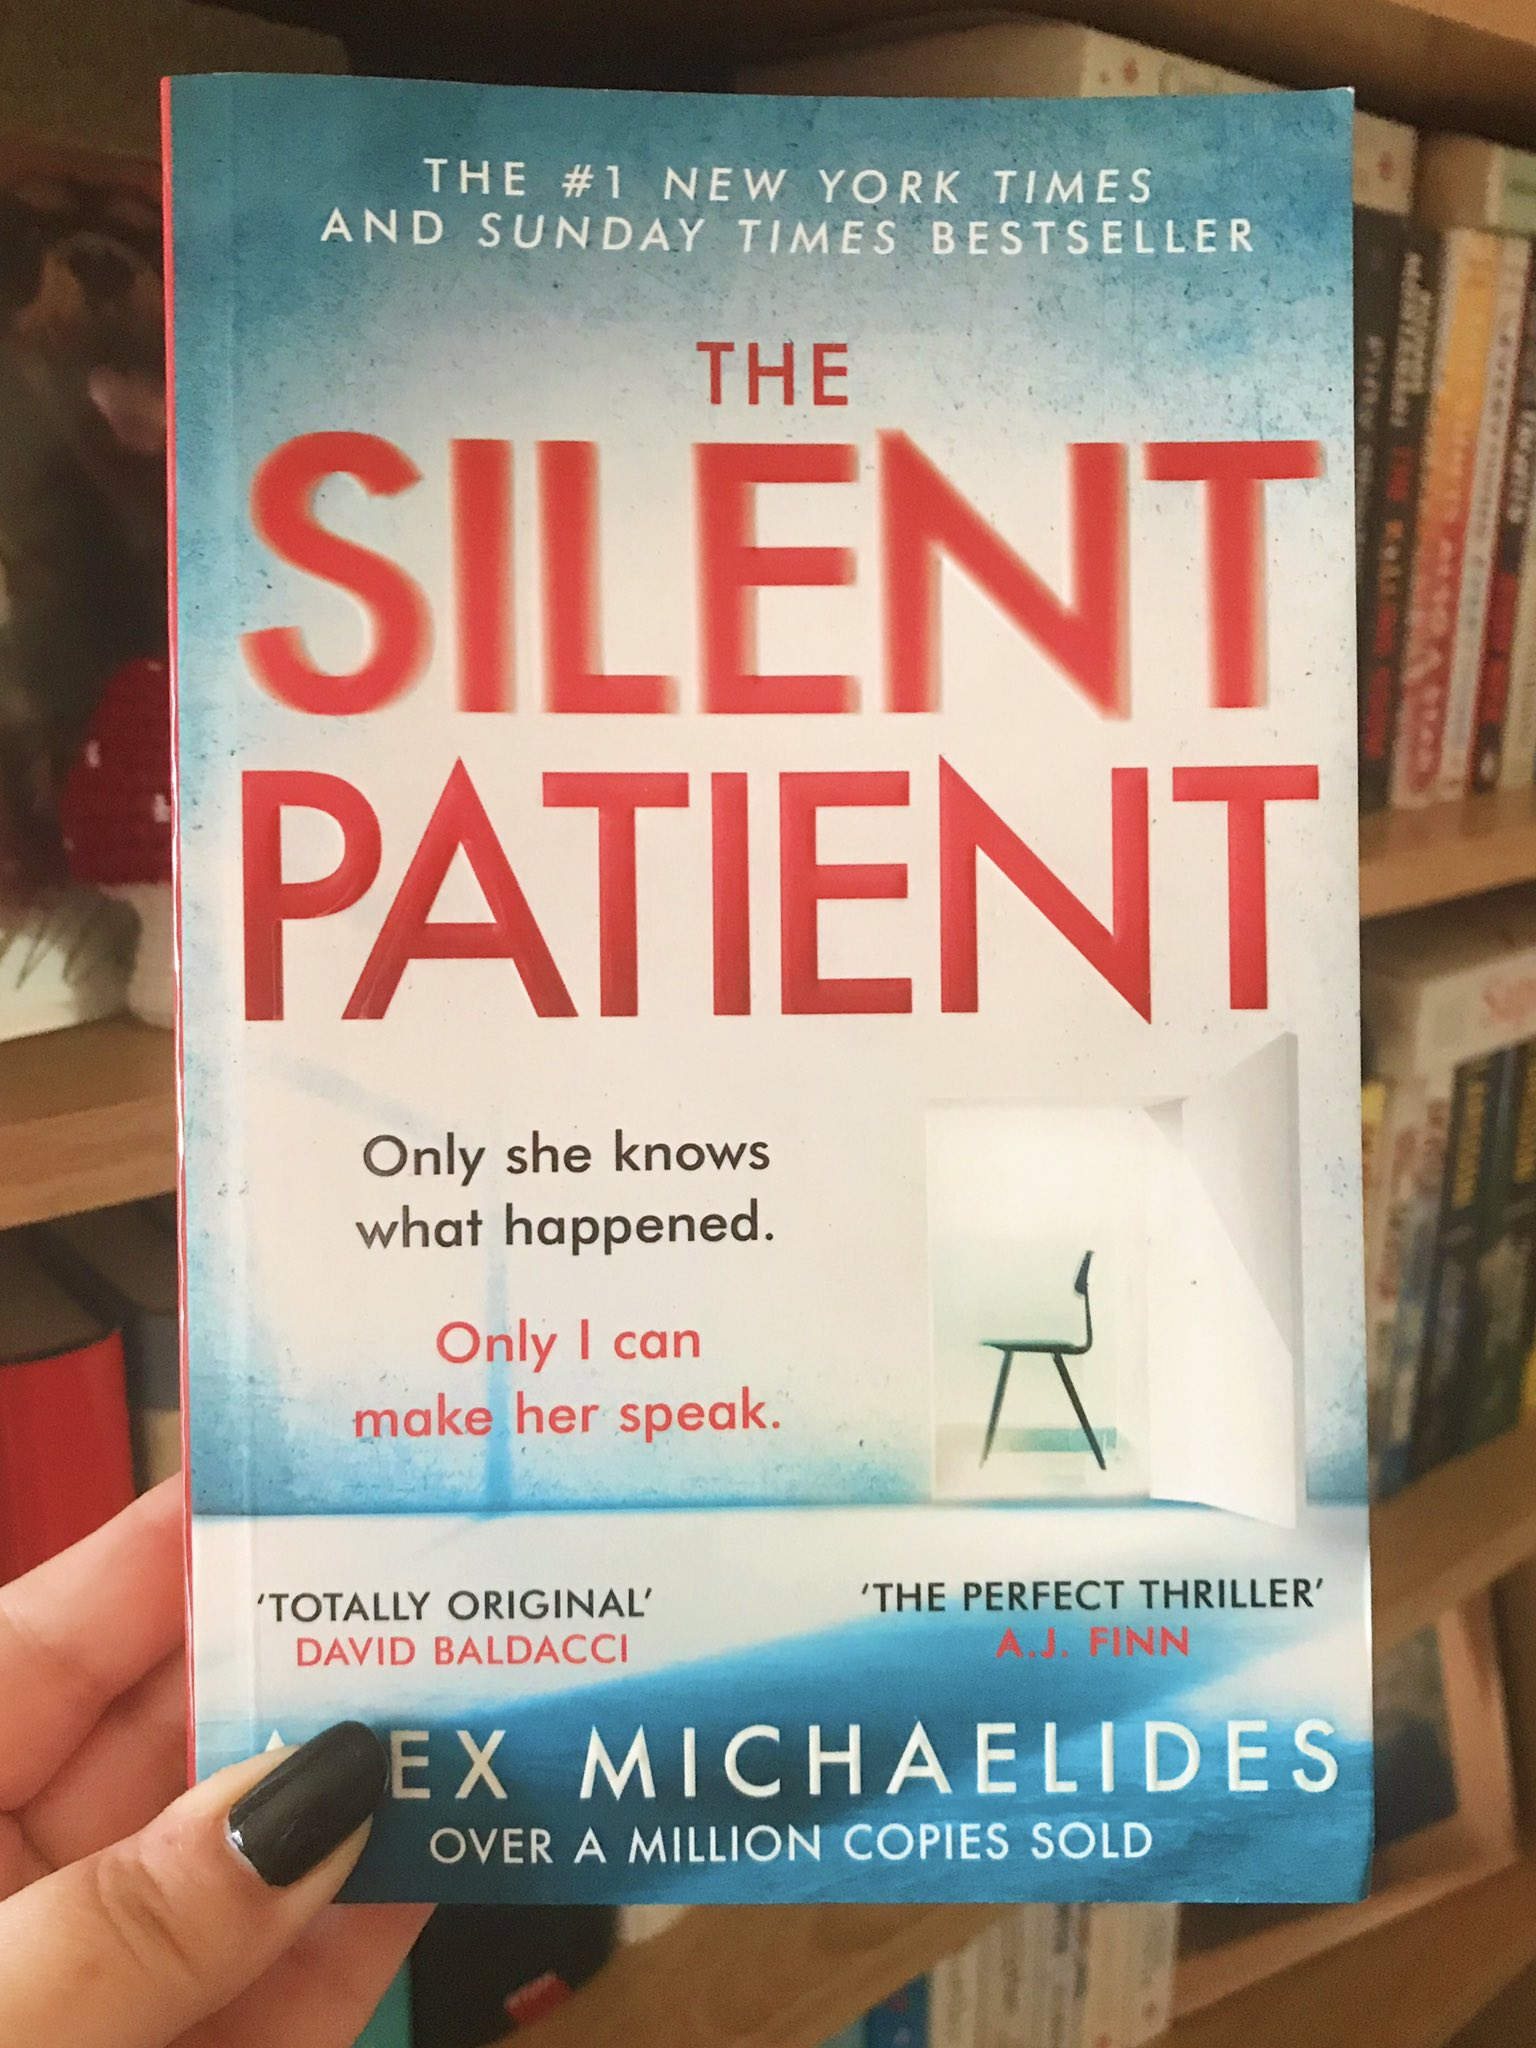 The Silent Patient by Alex Michaelides held up in front of bookshelf